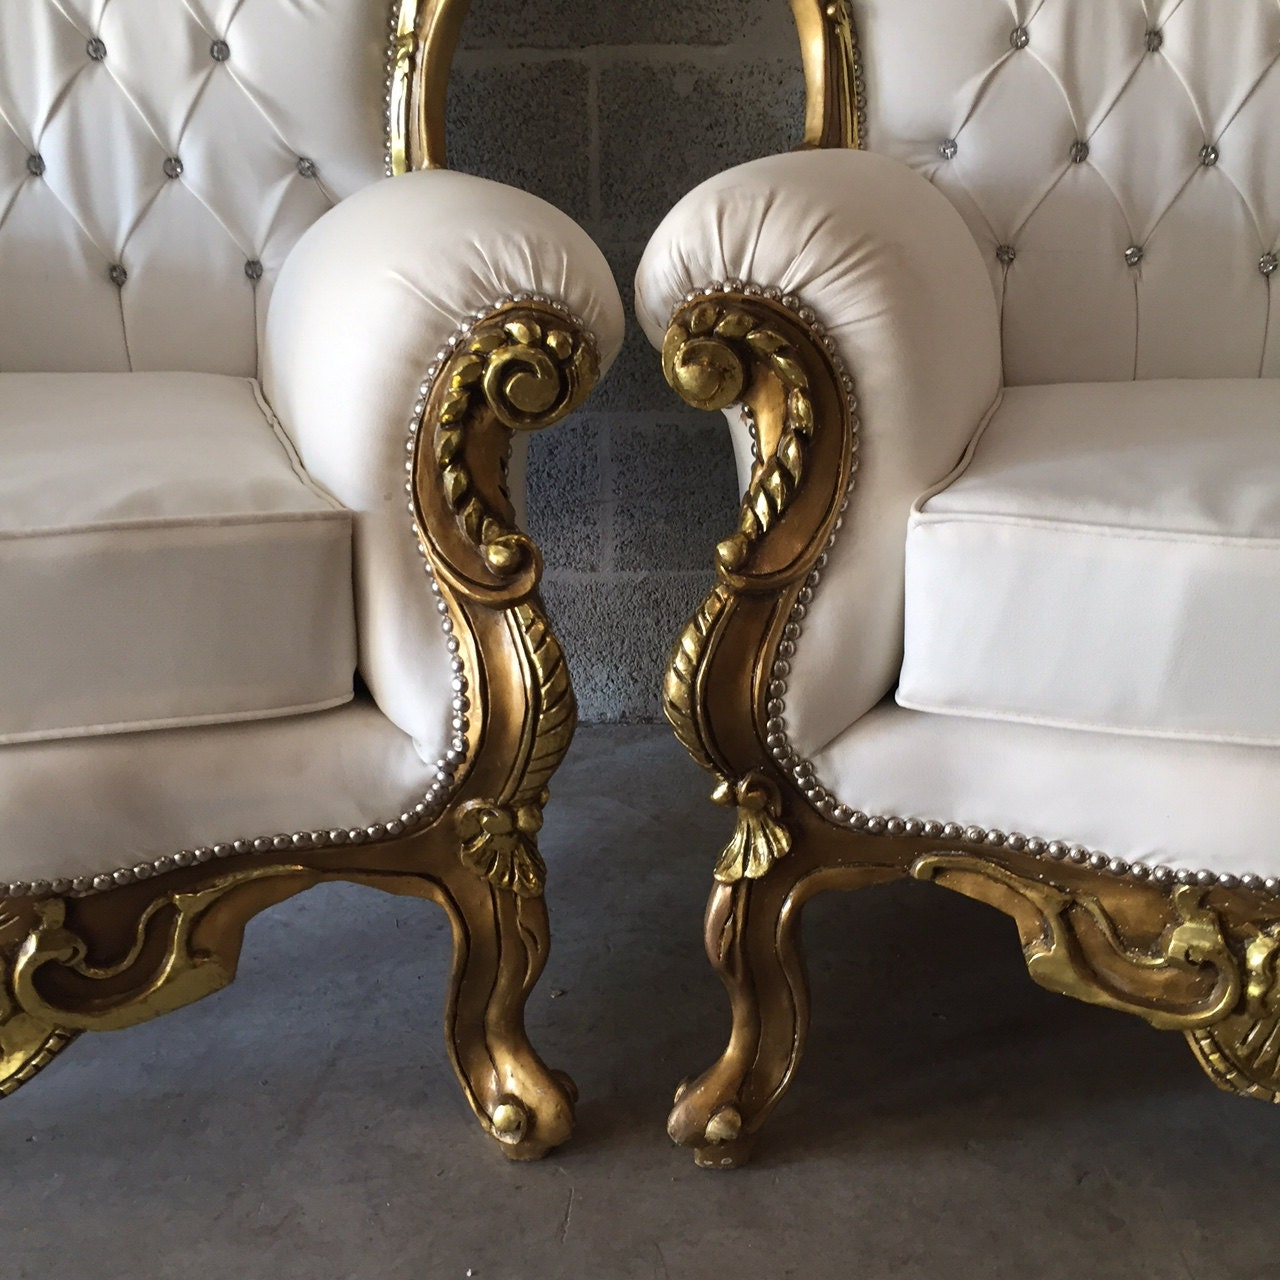 Pics photos rococo style chair sofa rococo - Rococo Furniture Settee Chair 3 Piece Available Antique Italian Throne Bergere Sofa Gold Leaf White Leather Tufted Settee Baroque Louis Xvi